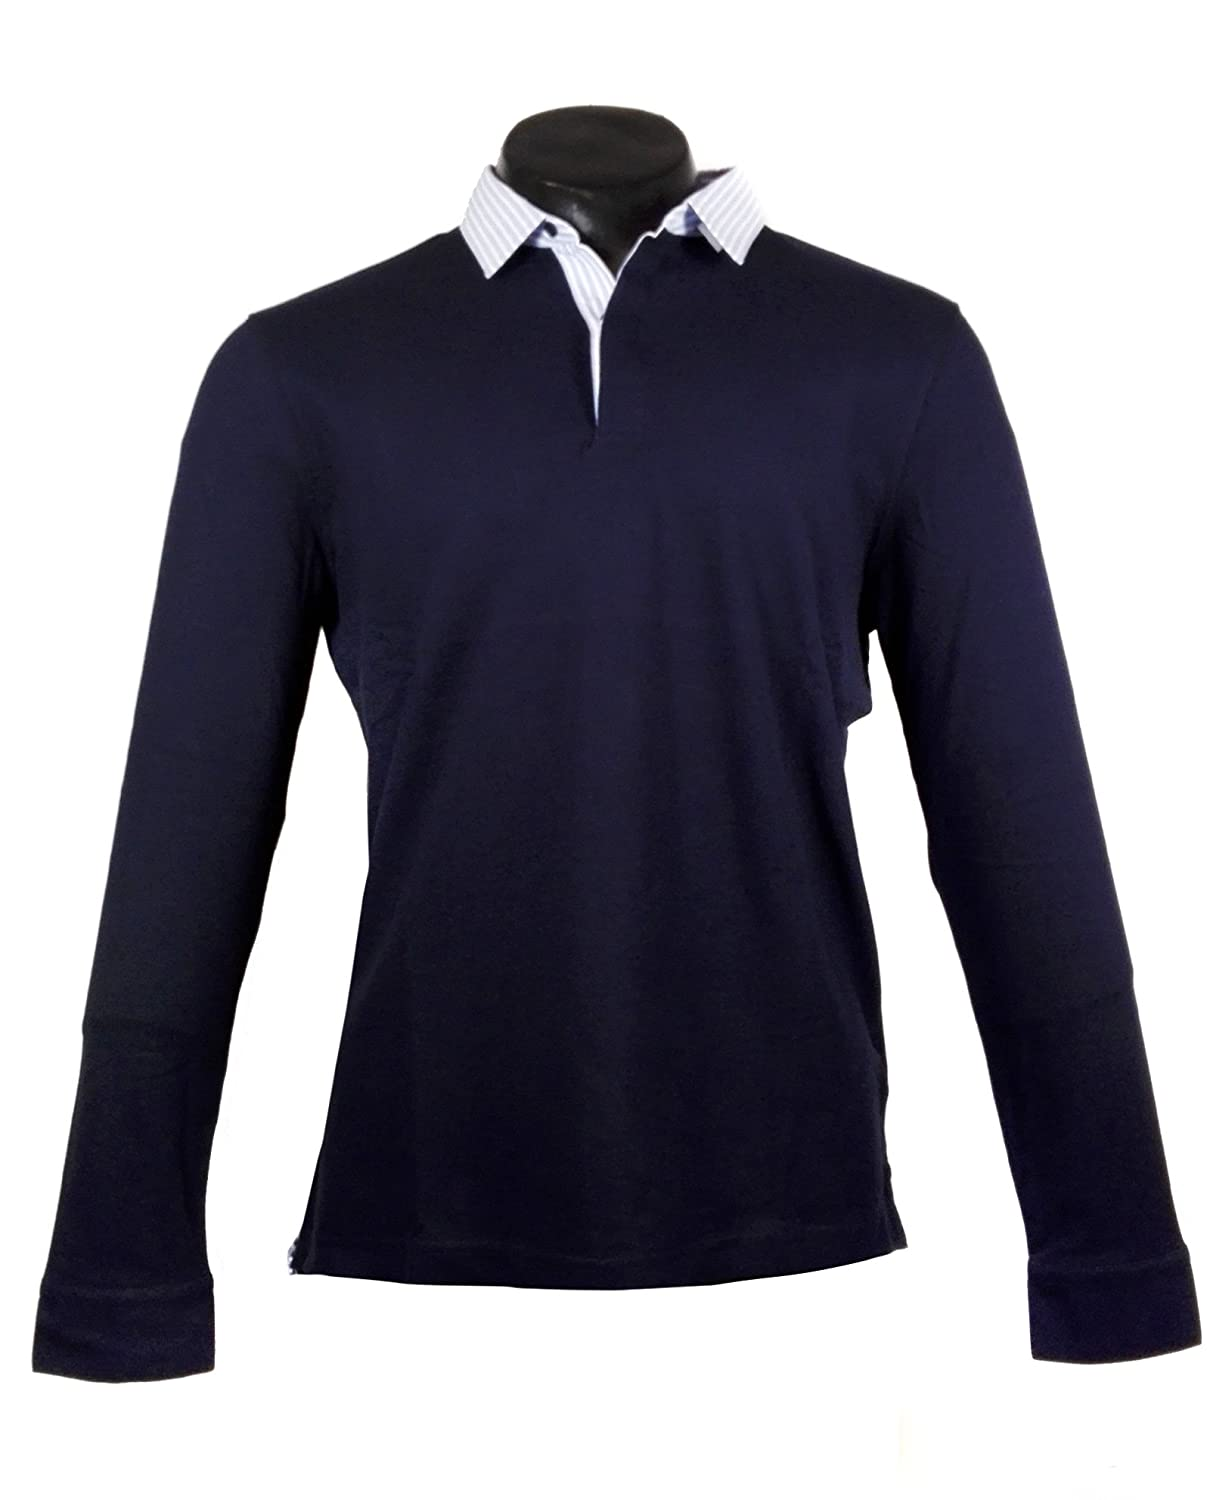 f6592d1e MASSIMO DUTTI Men Polo Shirt with Striped Shirt Collar Detail 0765/263 -  Blue - XXL: Amazon.co.uk: Clothing